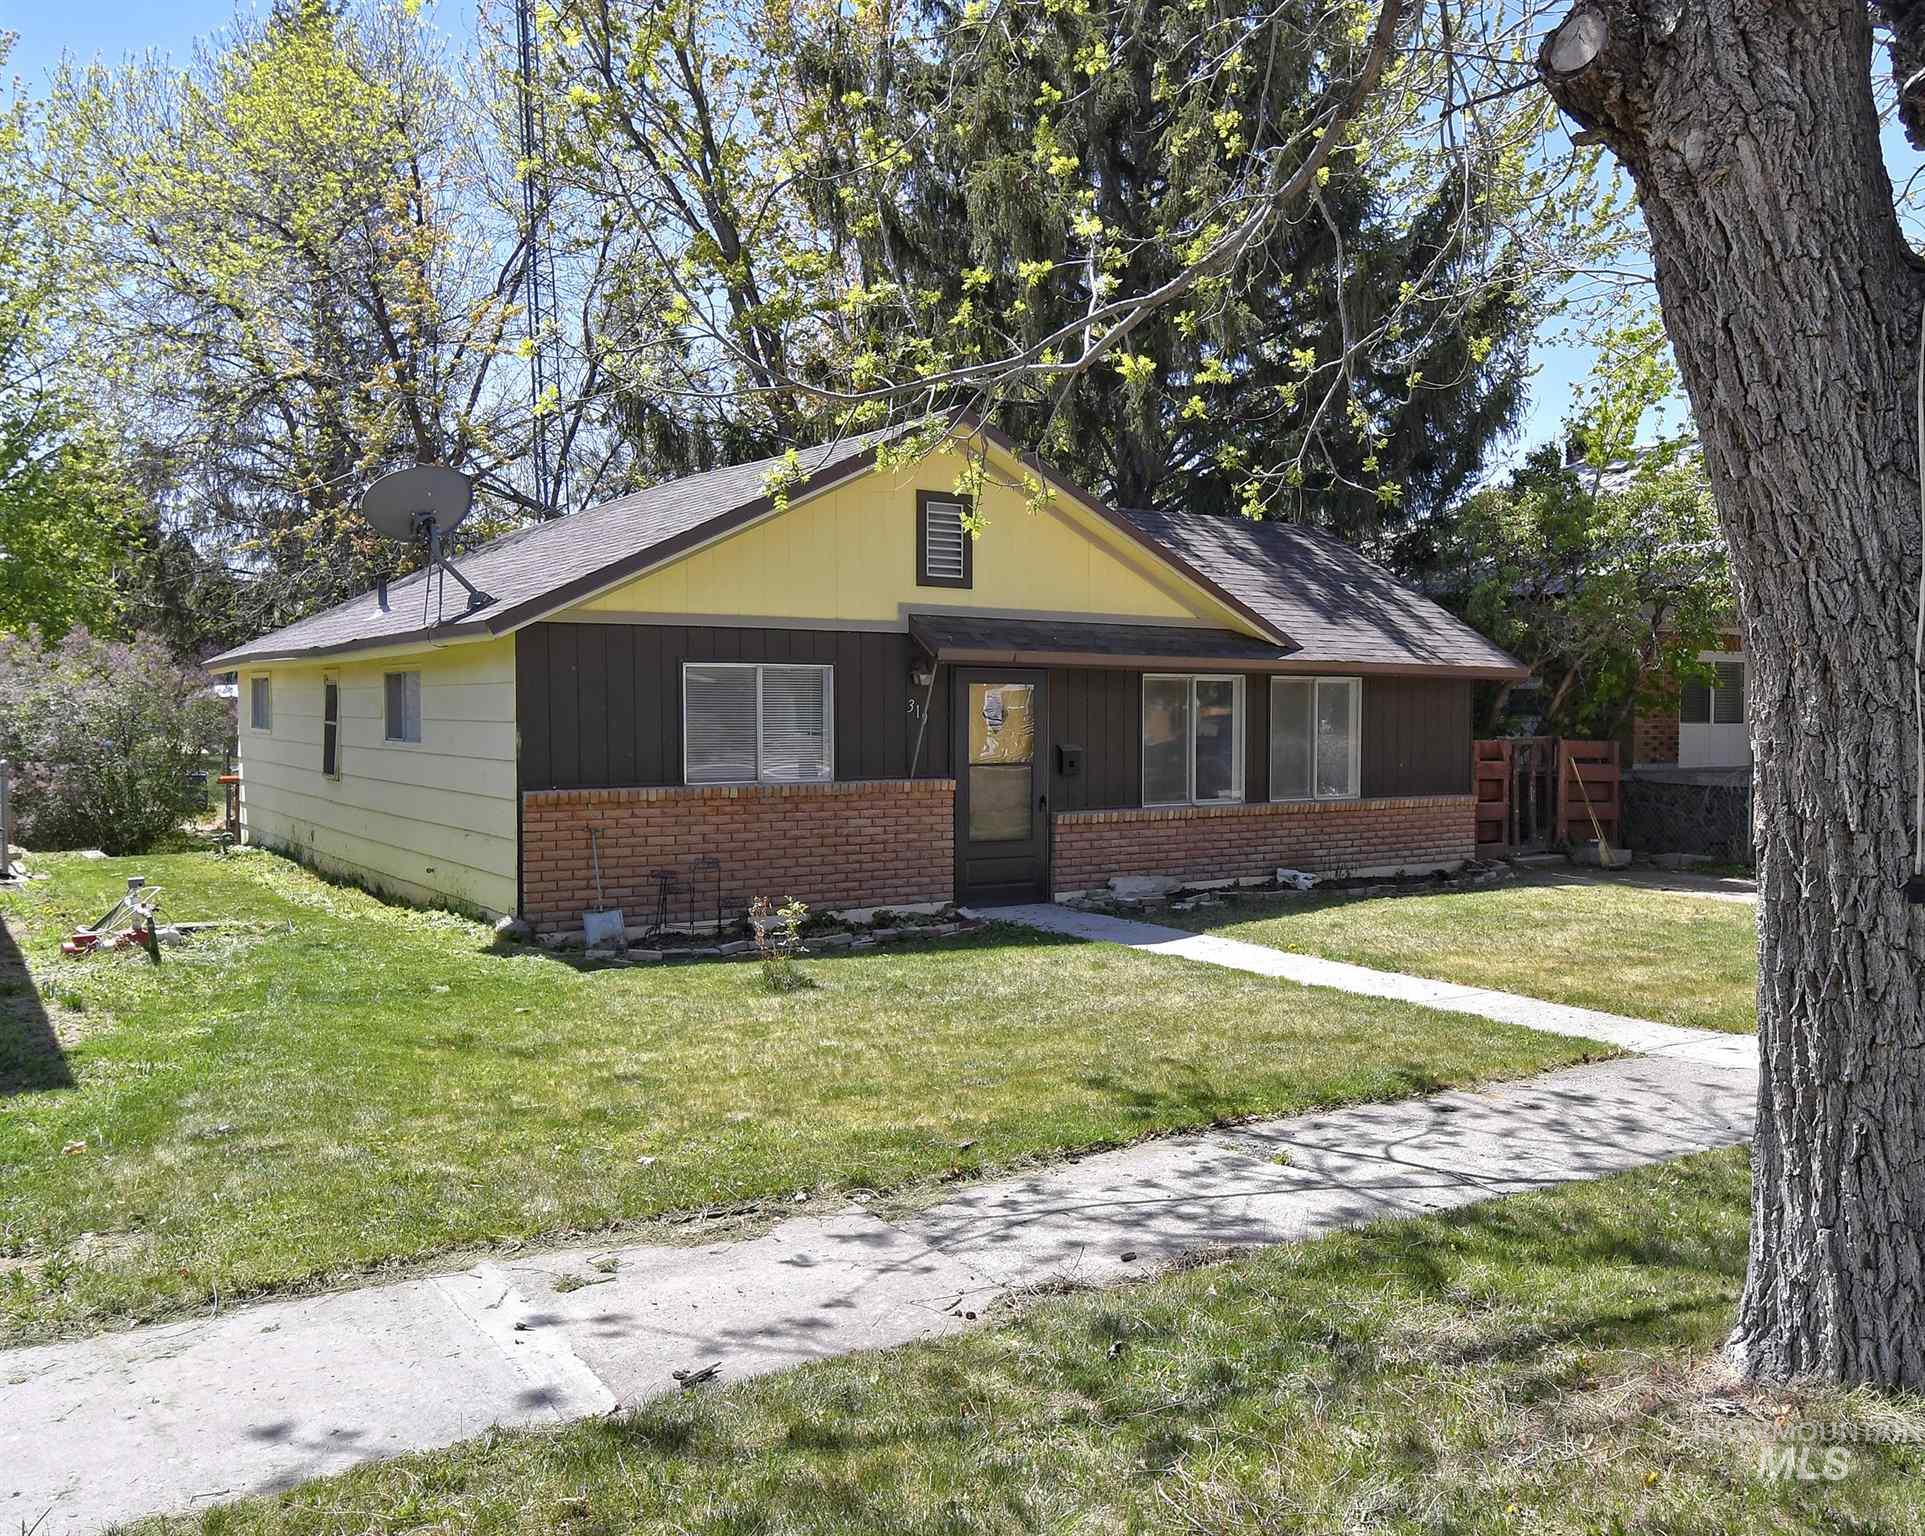 319 E Ave D Property Photo - Jerome, ID real estate listing